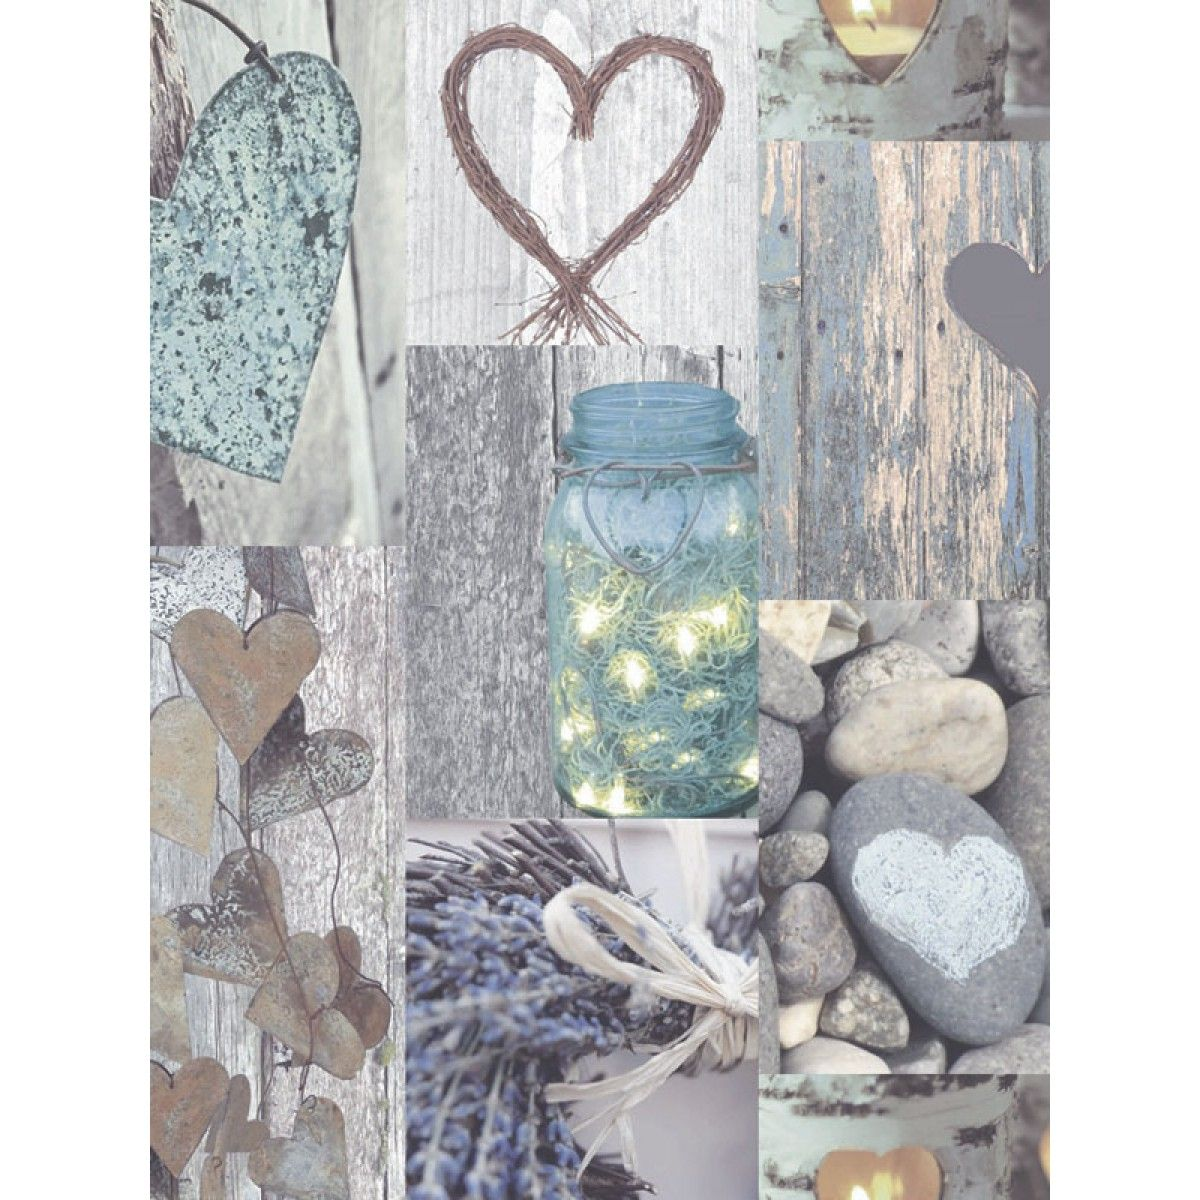 This Rustic Heart Wallpaper In Natural Tones Features A Collage Style Design With Pretty